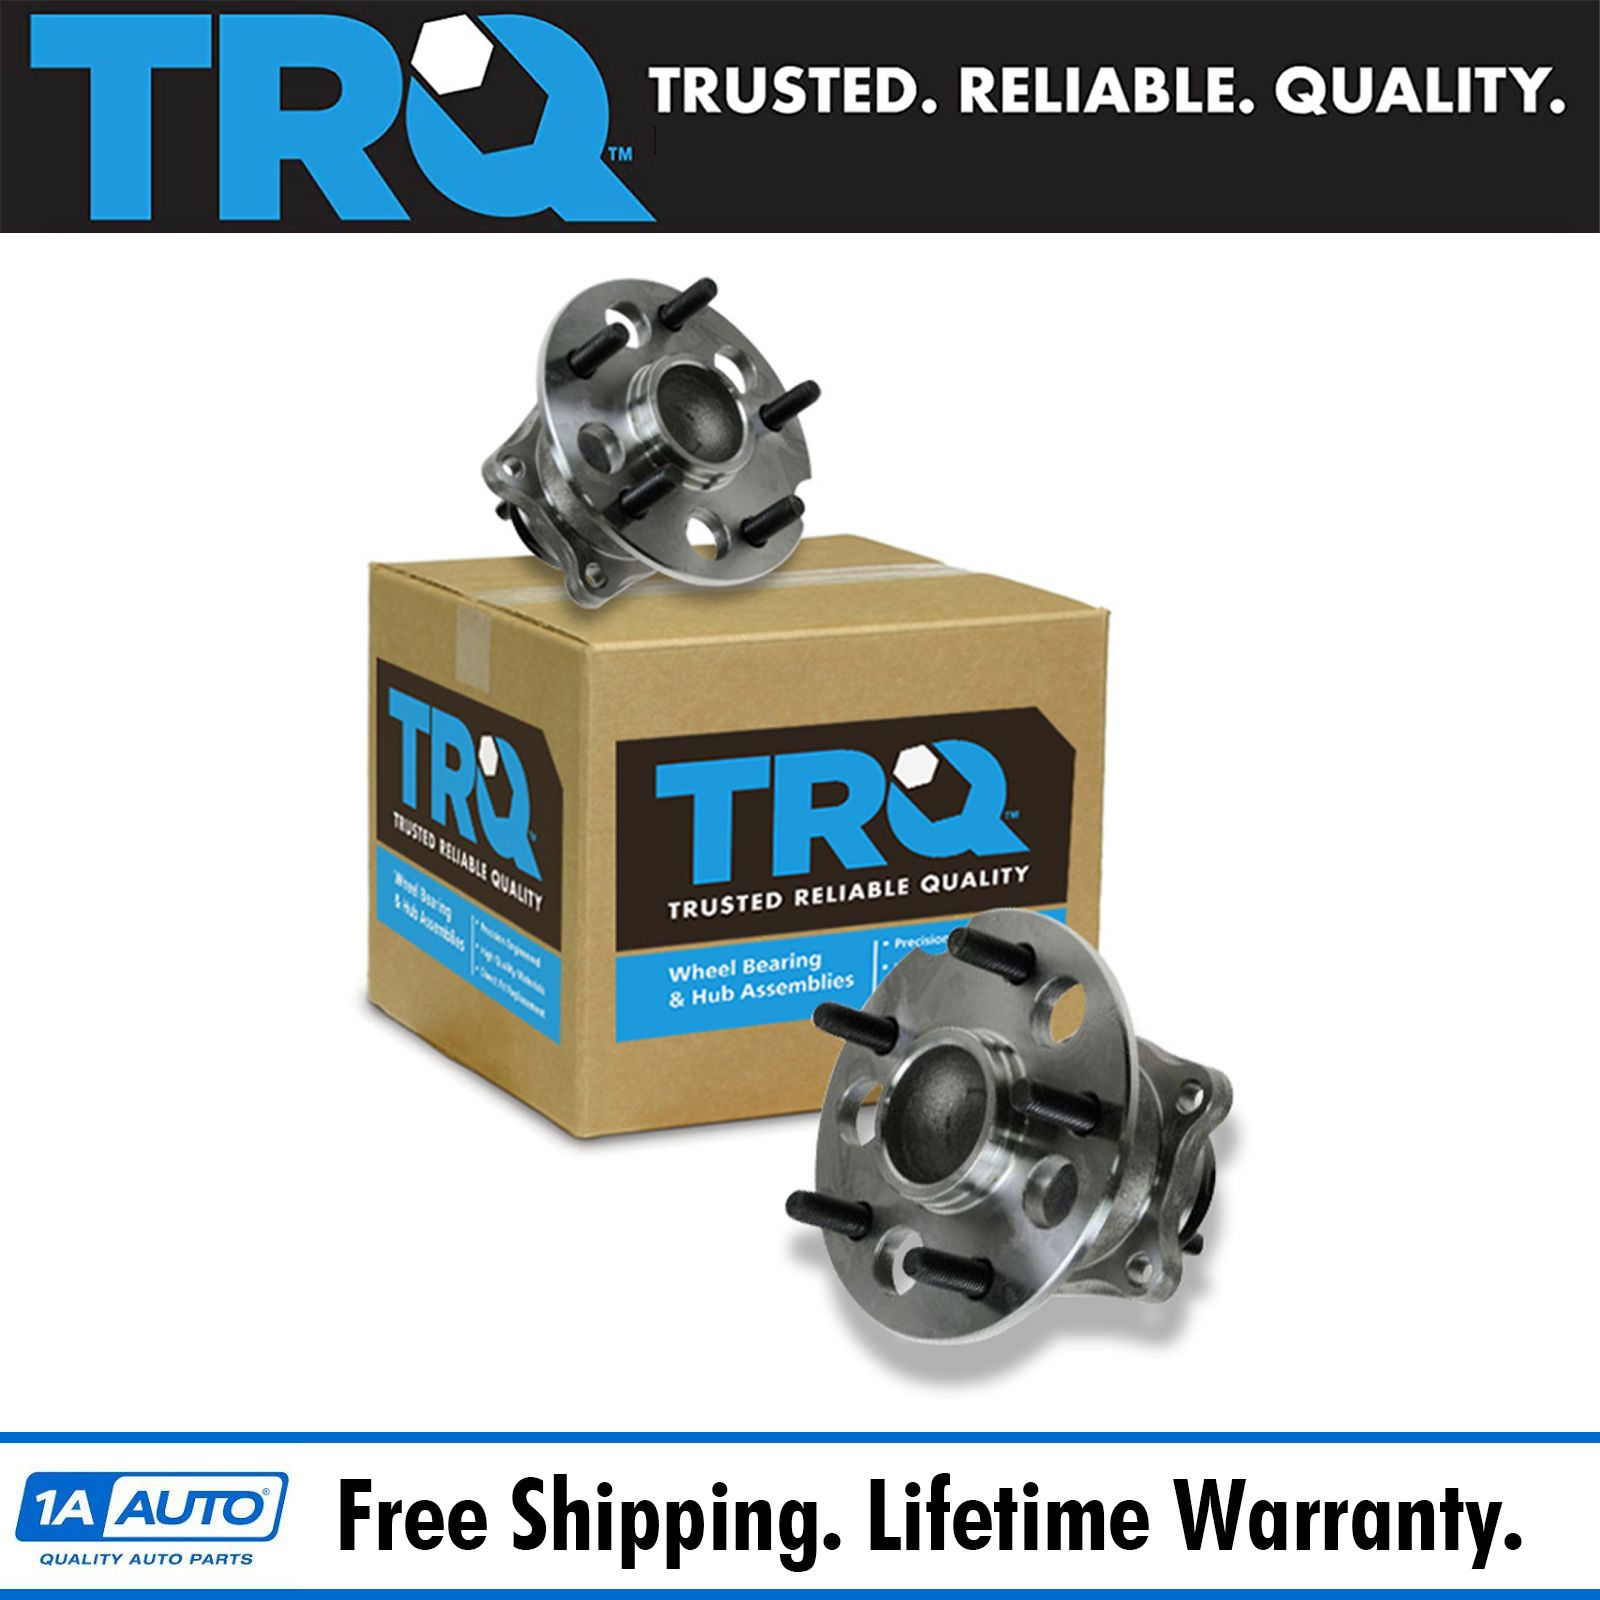 Details about TRQ Wheel Bearing & Hub Assembly Rear Pair for 04-10 Toyota  Sienna FWD 2WD NEW